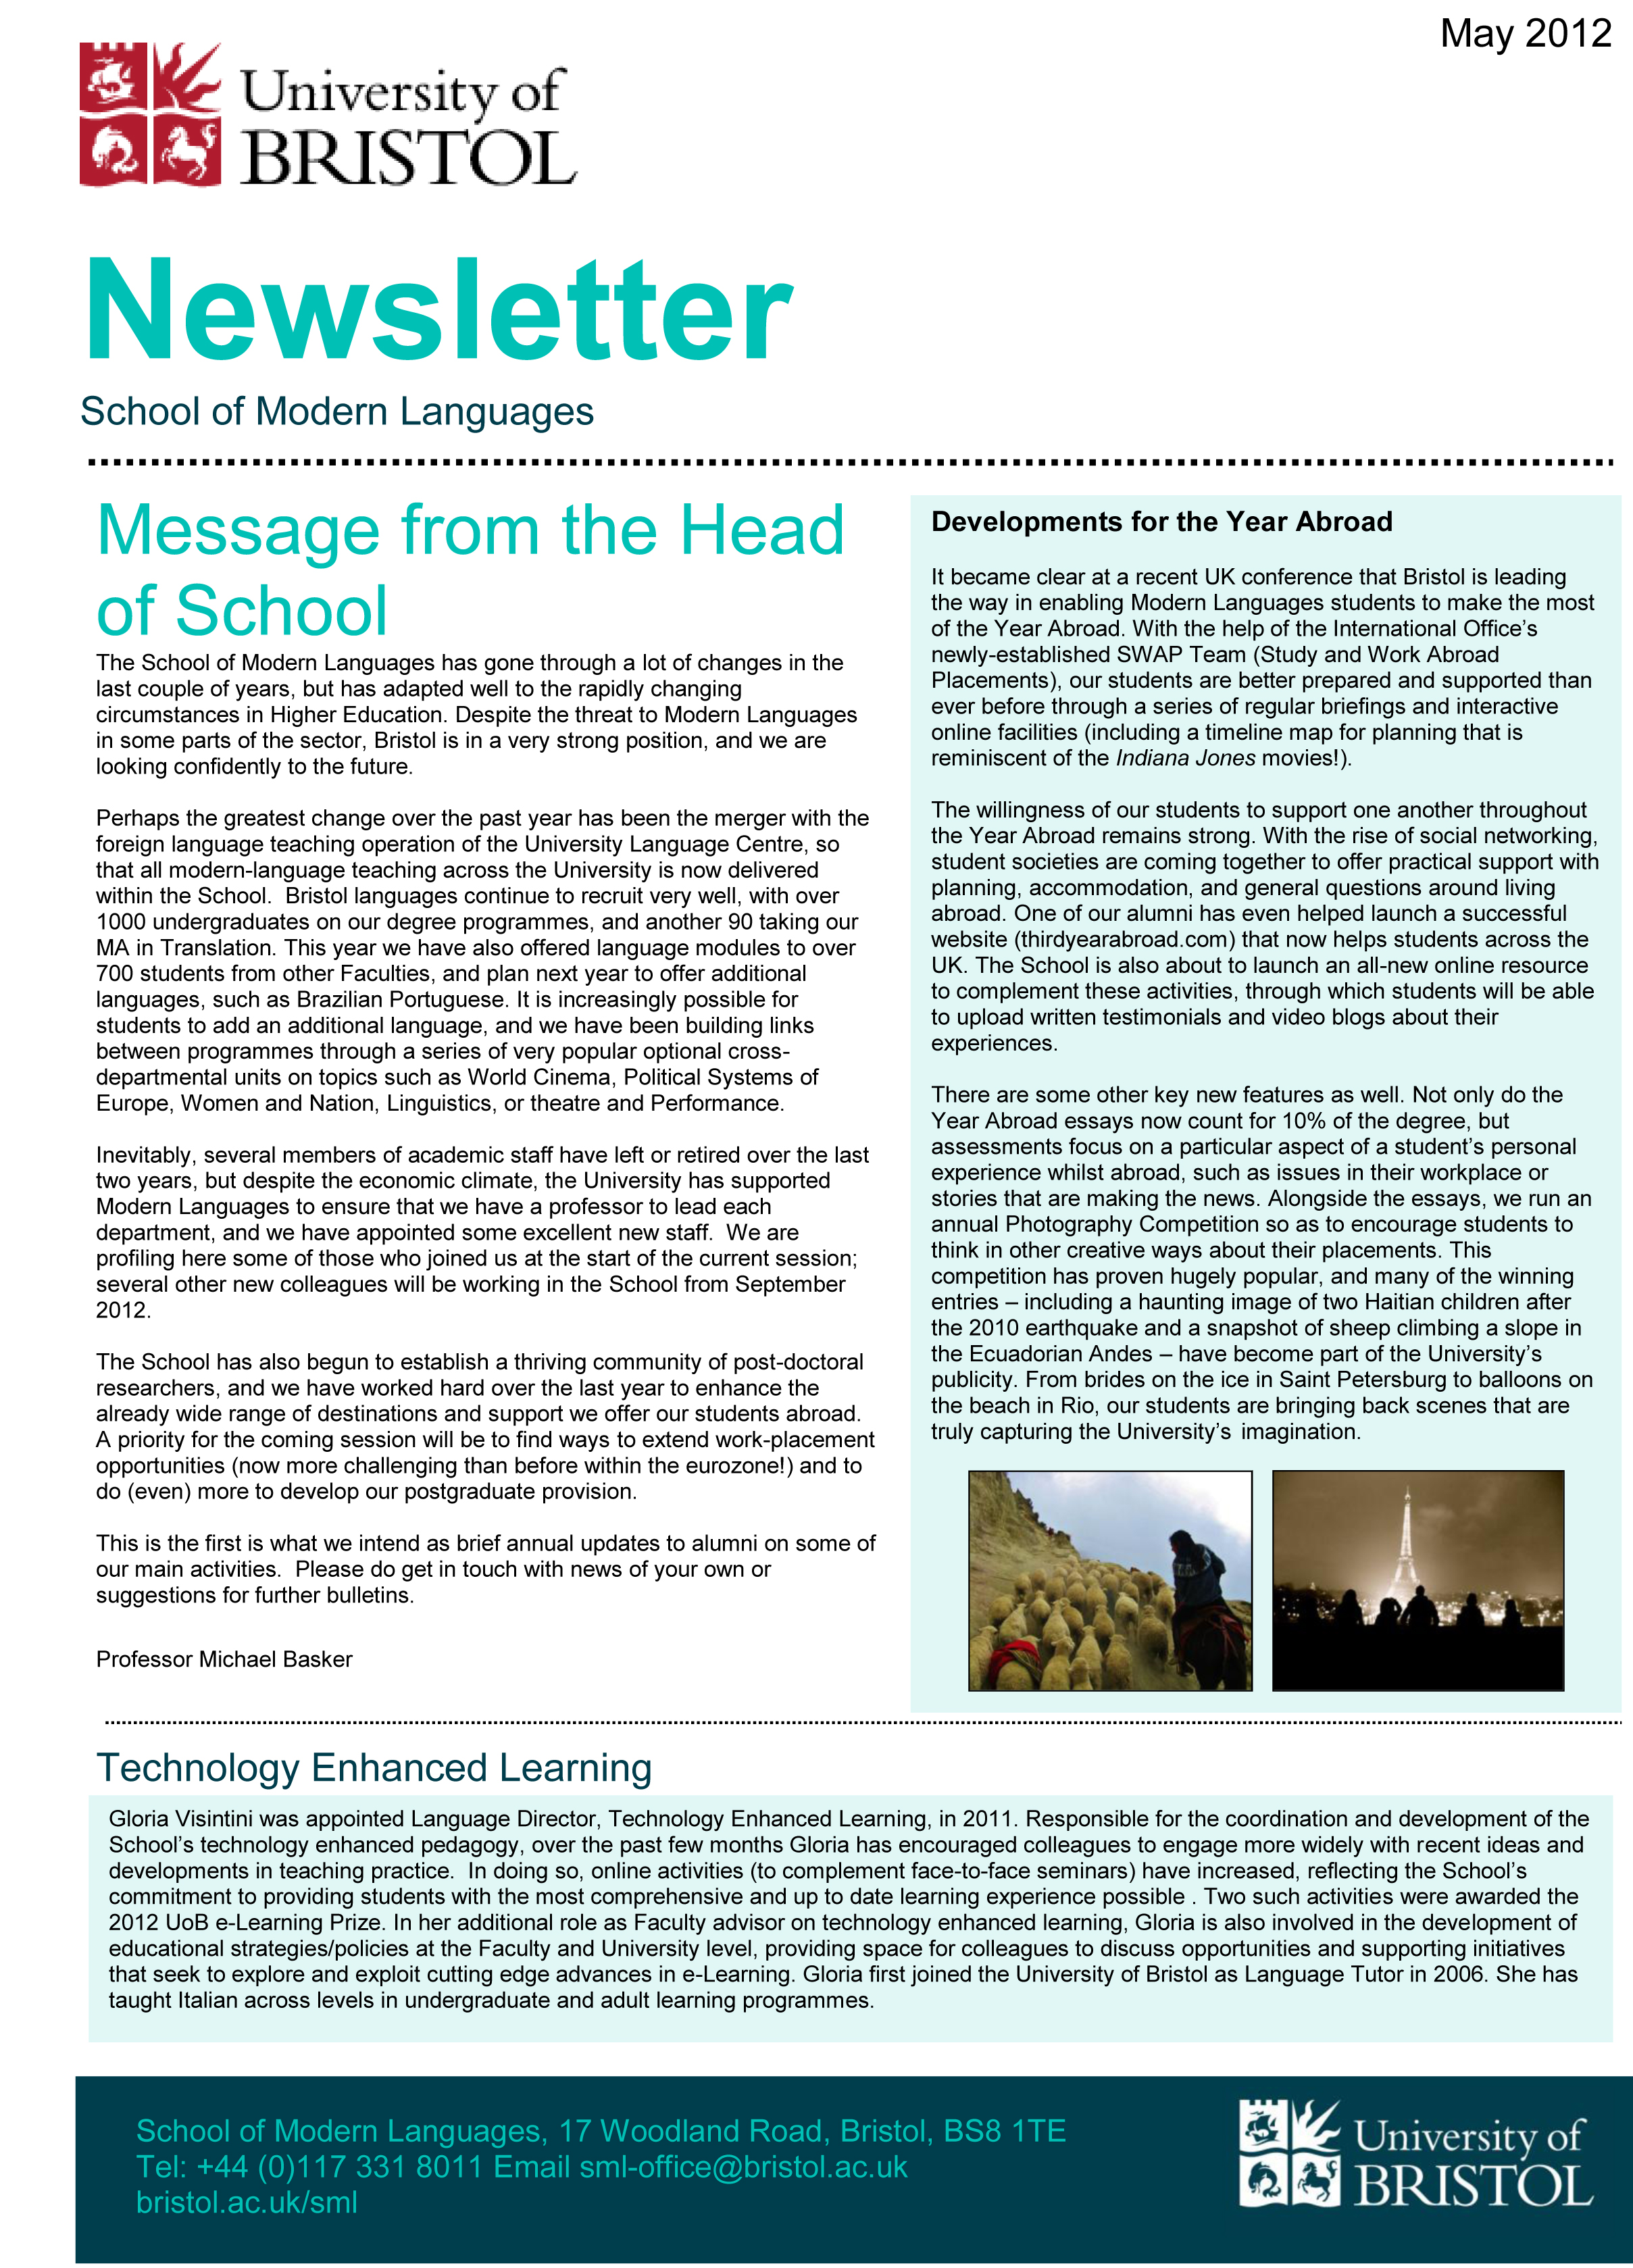 format for newsletter - Khafre